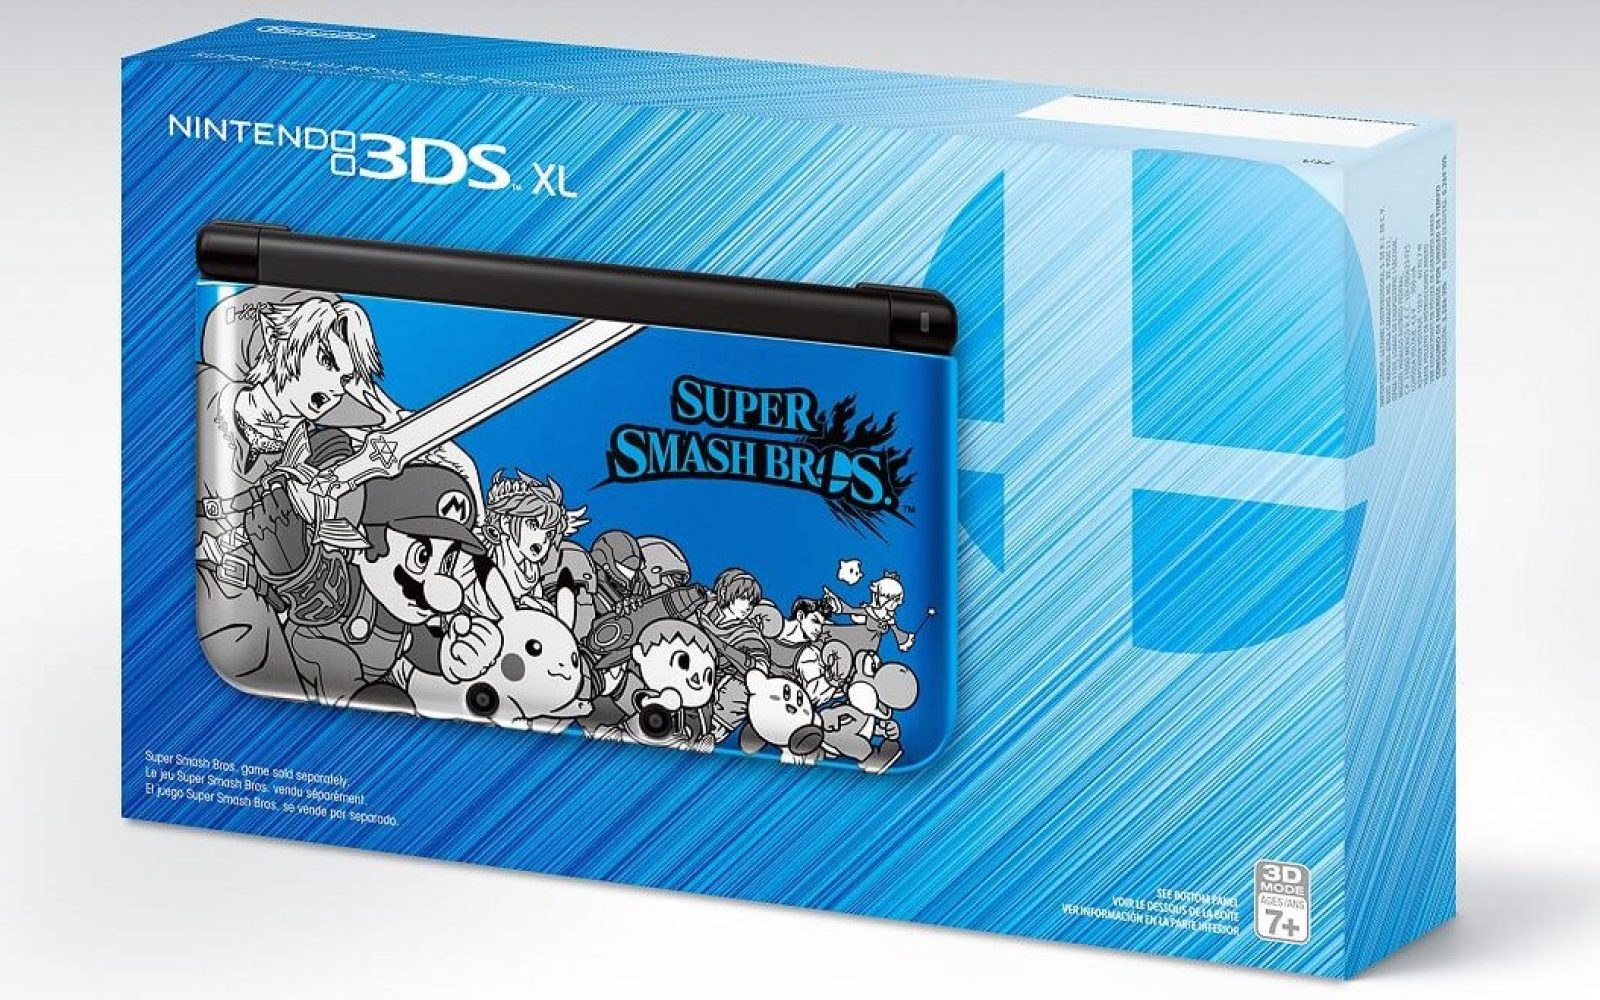 Super Smash Bros 9to5toys Nintendo 3ds Xl Wiring Diagram Games Apps Refurb Special Edition From 130 Rainbow Six Siege 50 Ios Freebies More